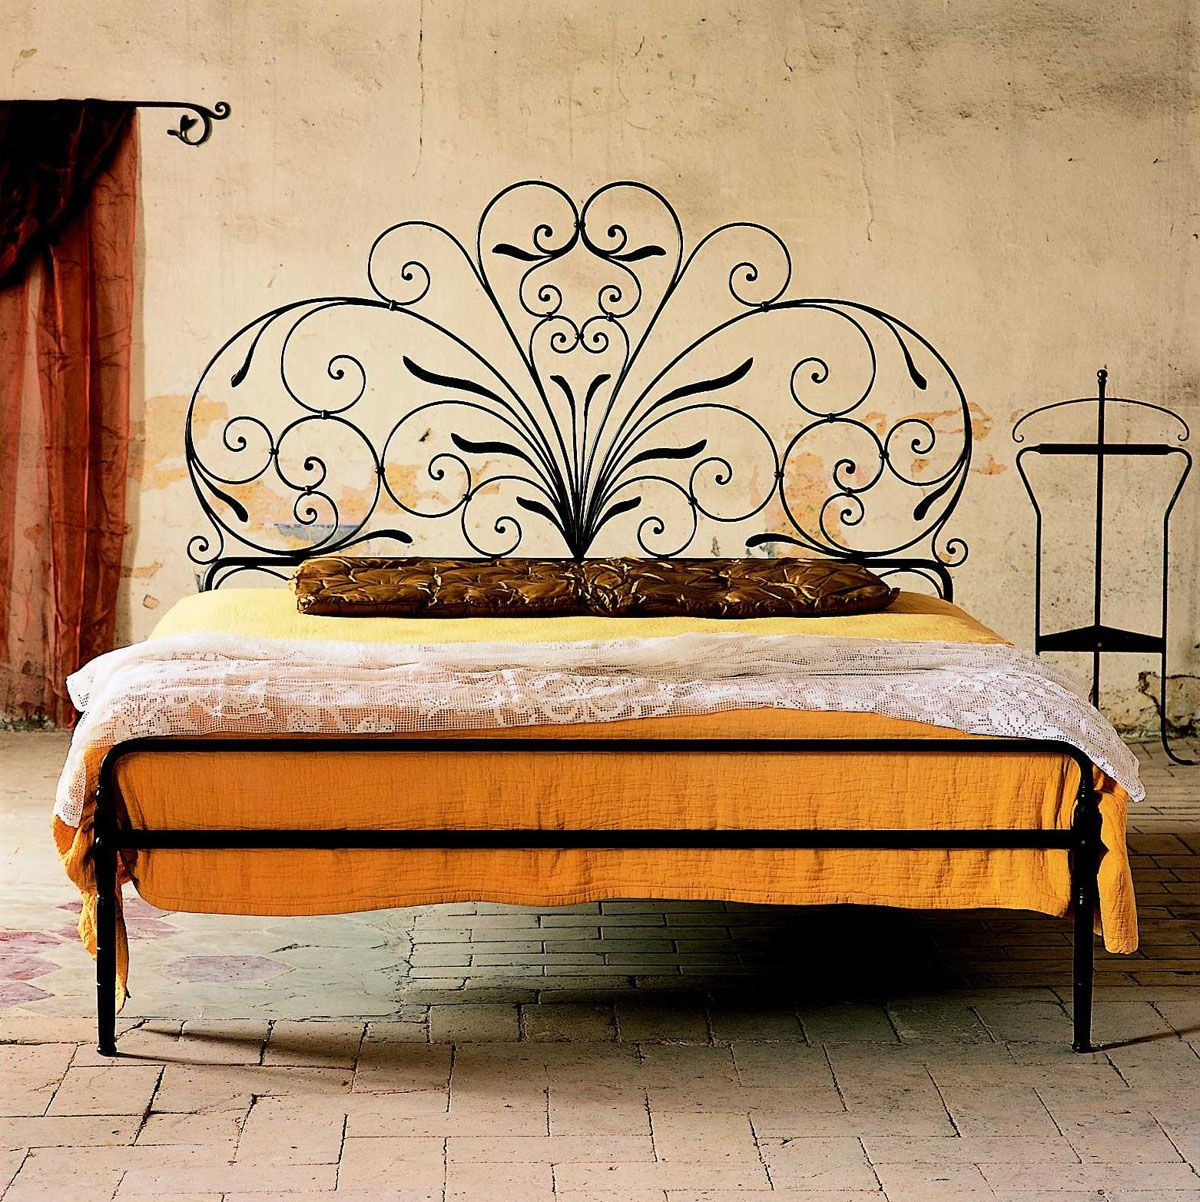 This Tuscan Bedroom Features A Beautiful Headboard Of Wrought Iron Which Is  So Tuscan. The Wall In The Background Is Also In Stucco Which Is Very  Typical Of ...